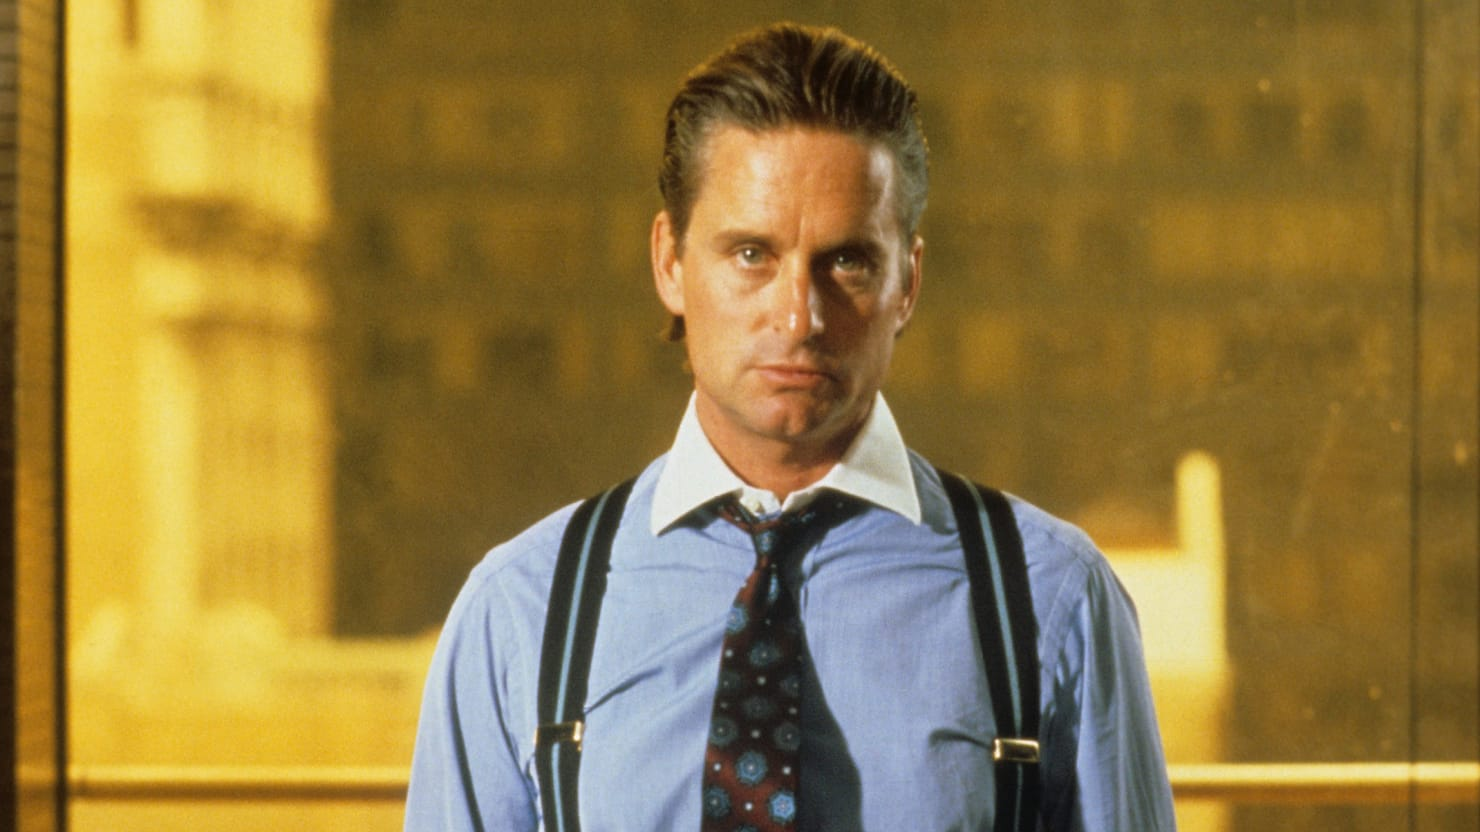 Wall Street Style Featuring The Iconic Gordon Gekko